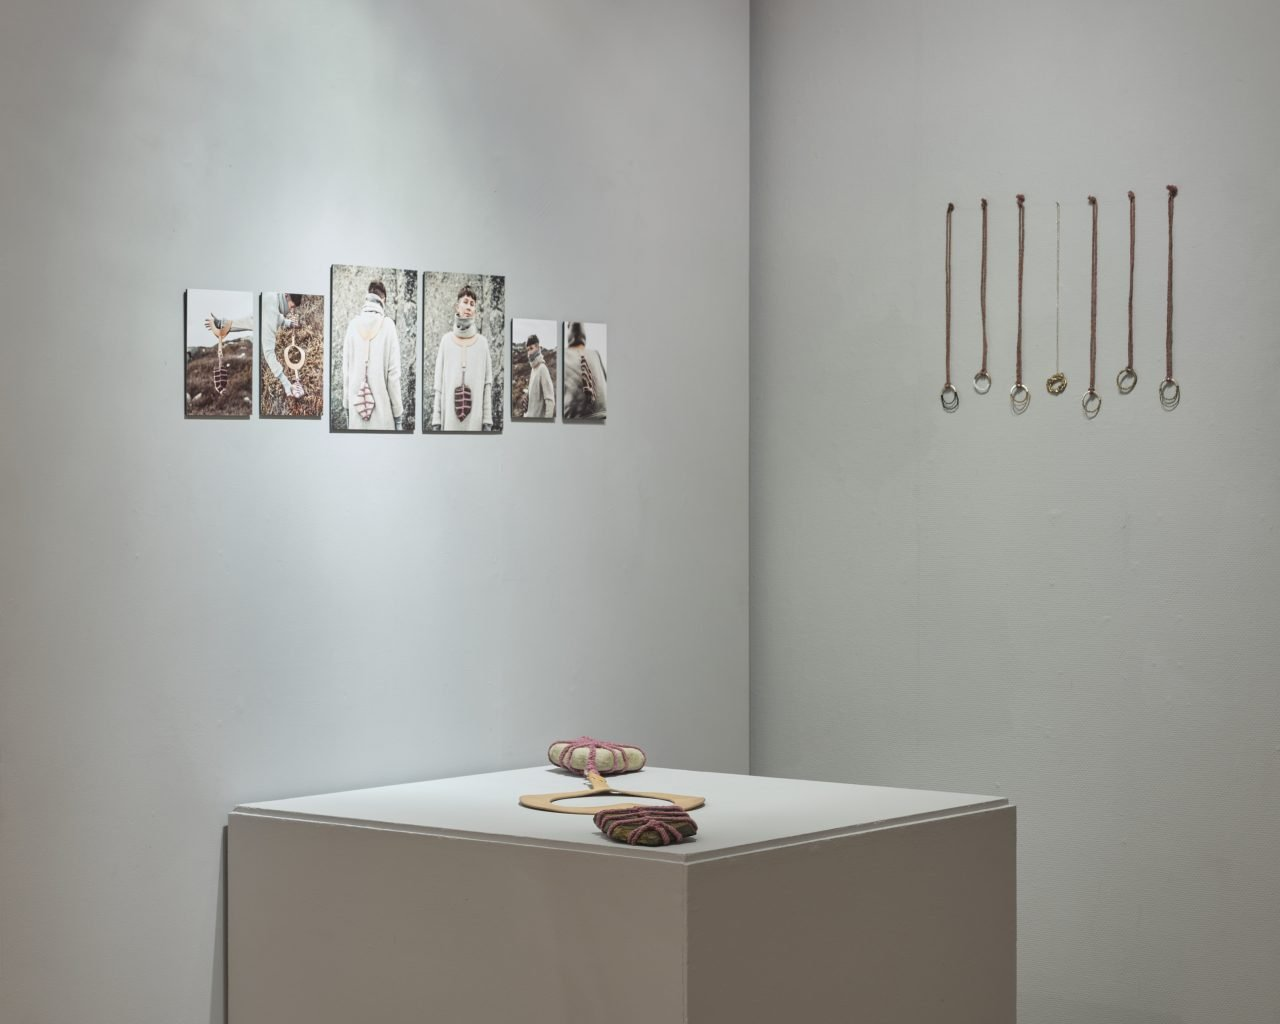 Oversized necklace made from leather, with stones wrapped in handmade rope on a plinth and small necklaces made of cast metal and handmade rope hung on the wall, with photographs of necklaces being worn